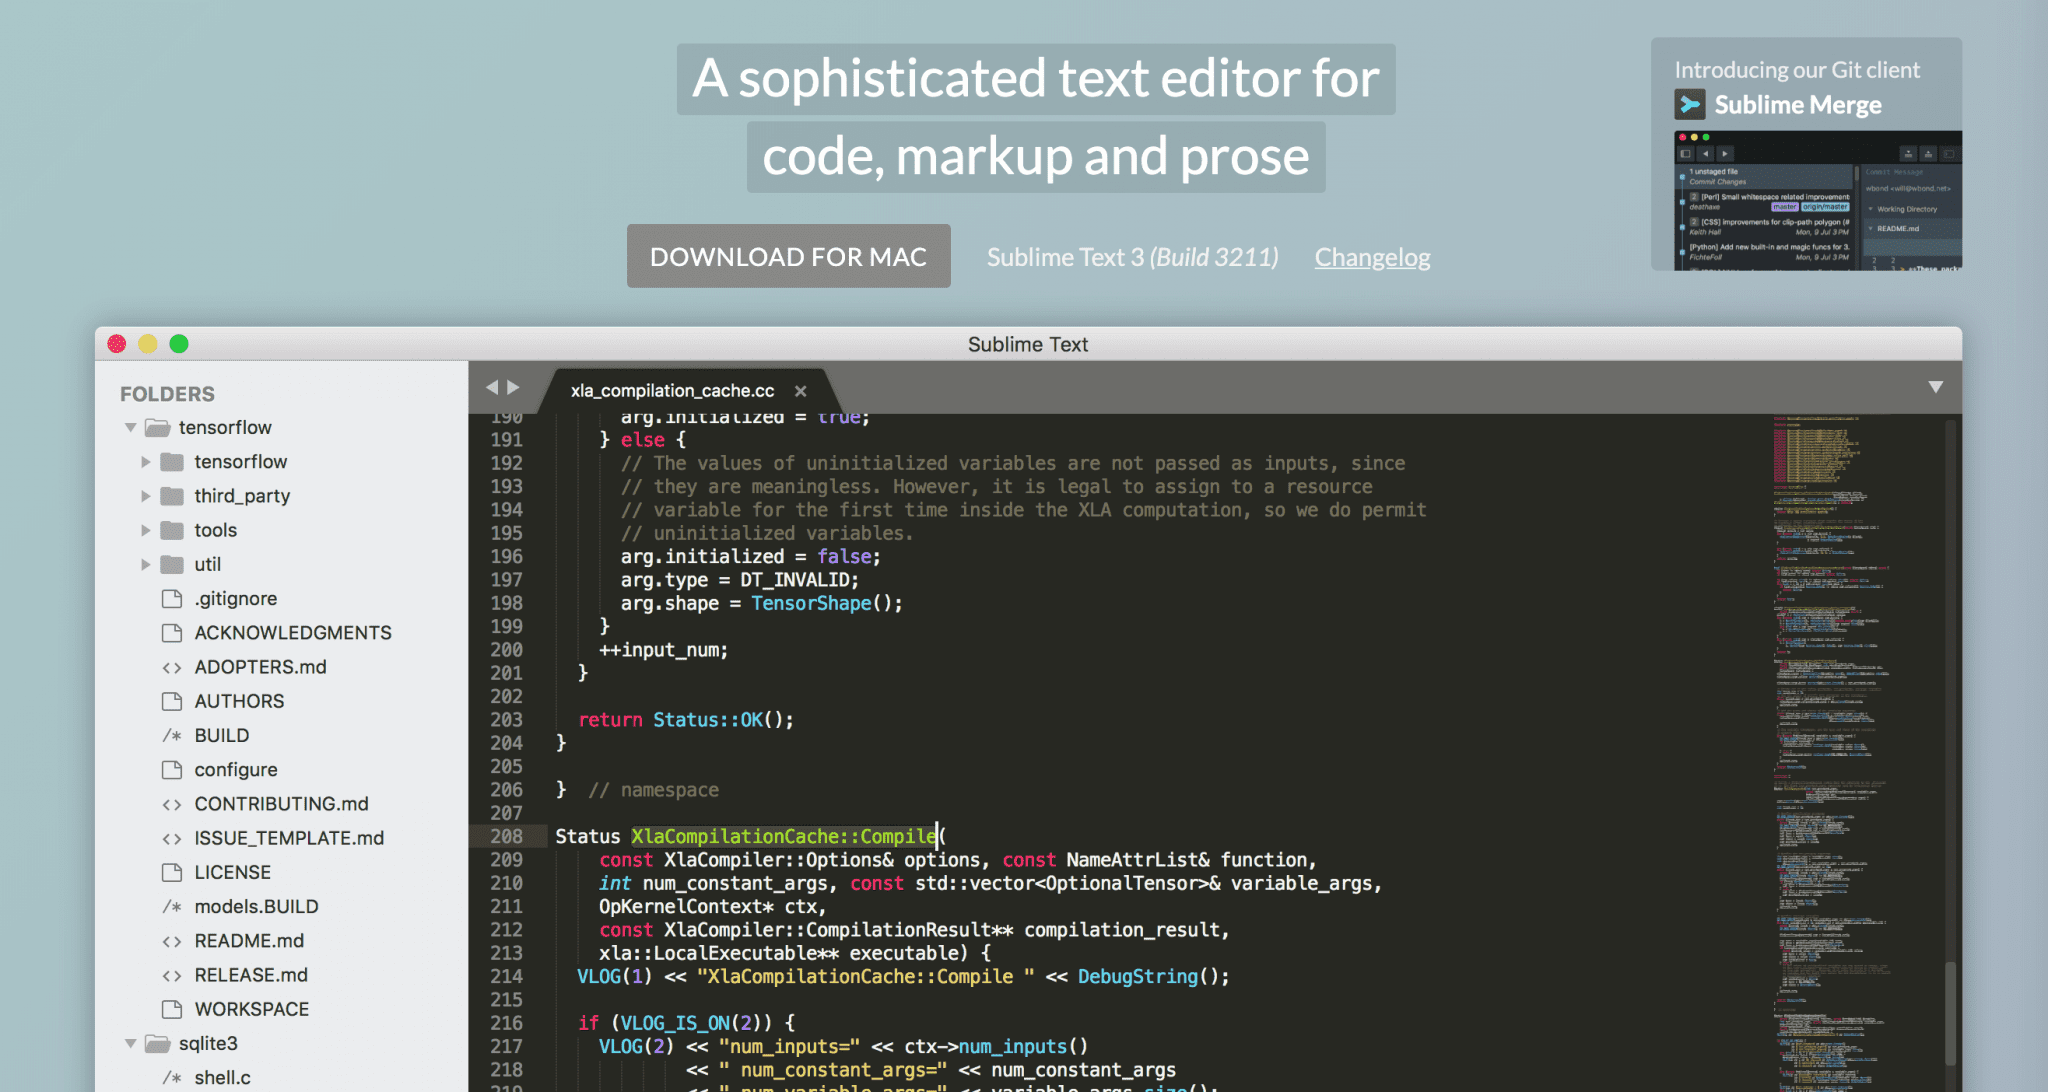 The Sublime Text 3 code editor.